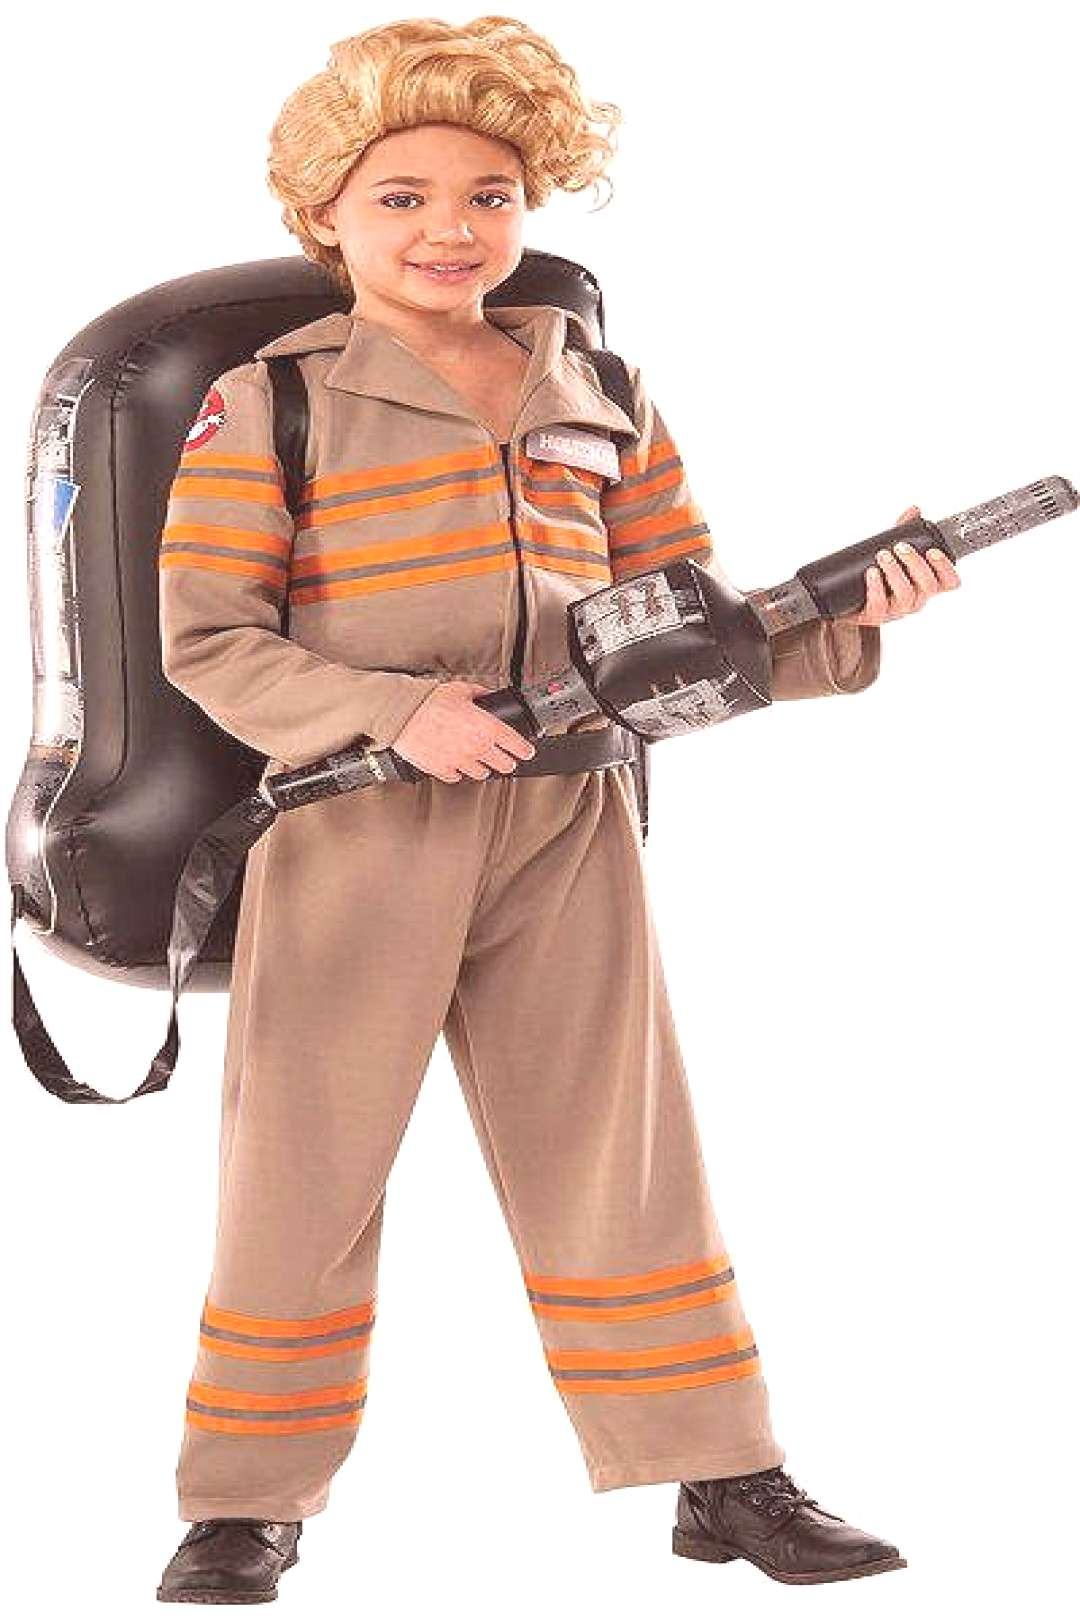 Asstd National Brand Ghostbusters Movie Ghostbuster Female Deluxe Child Costume...#asstd